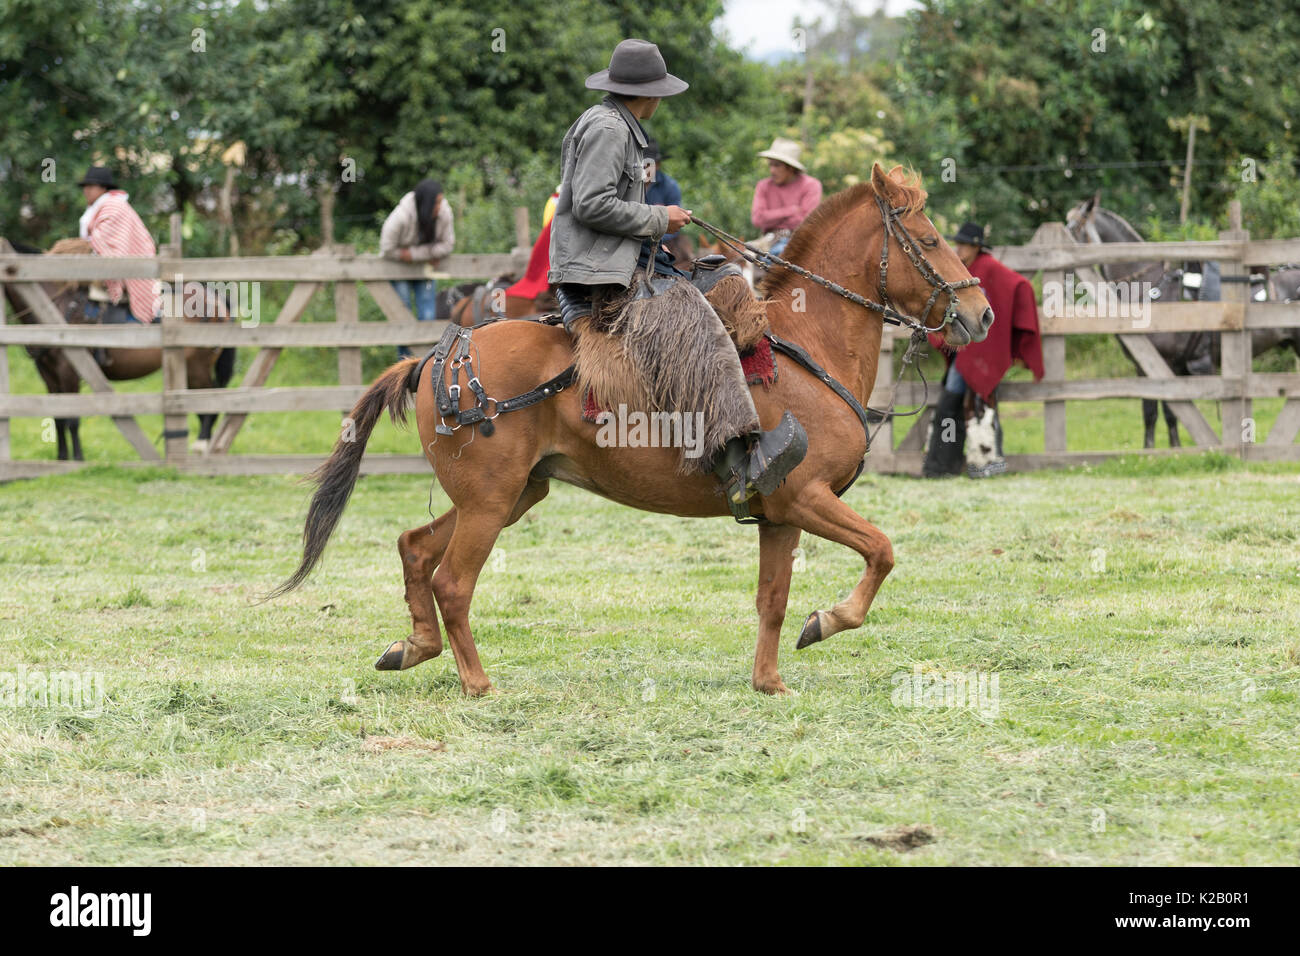 June 3, 2017 Machachi, Ecuador: cowboy from the Andes called 'chagra' on hoseback wearing traditional chaps - Stock Image